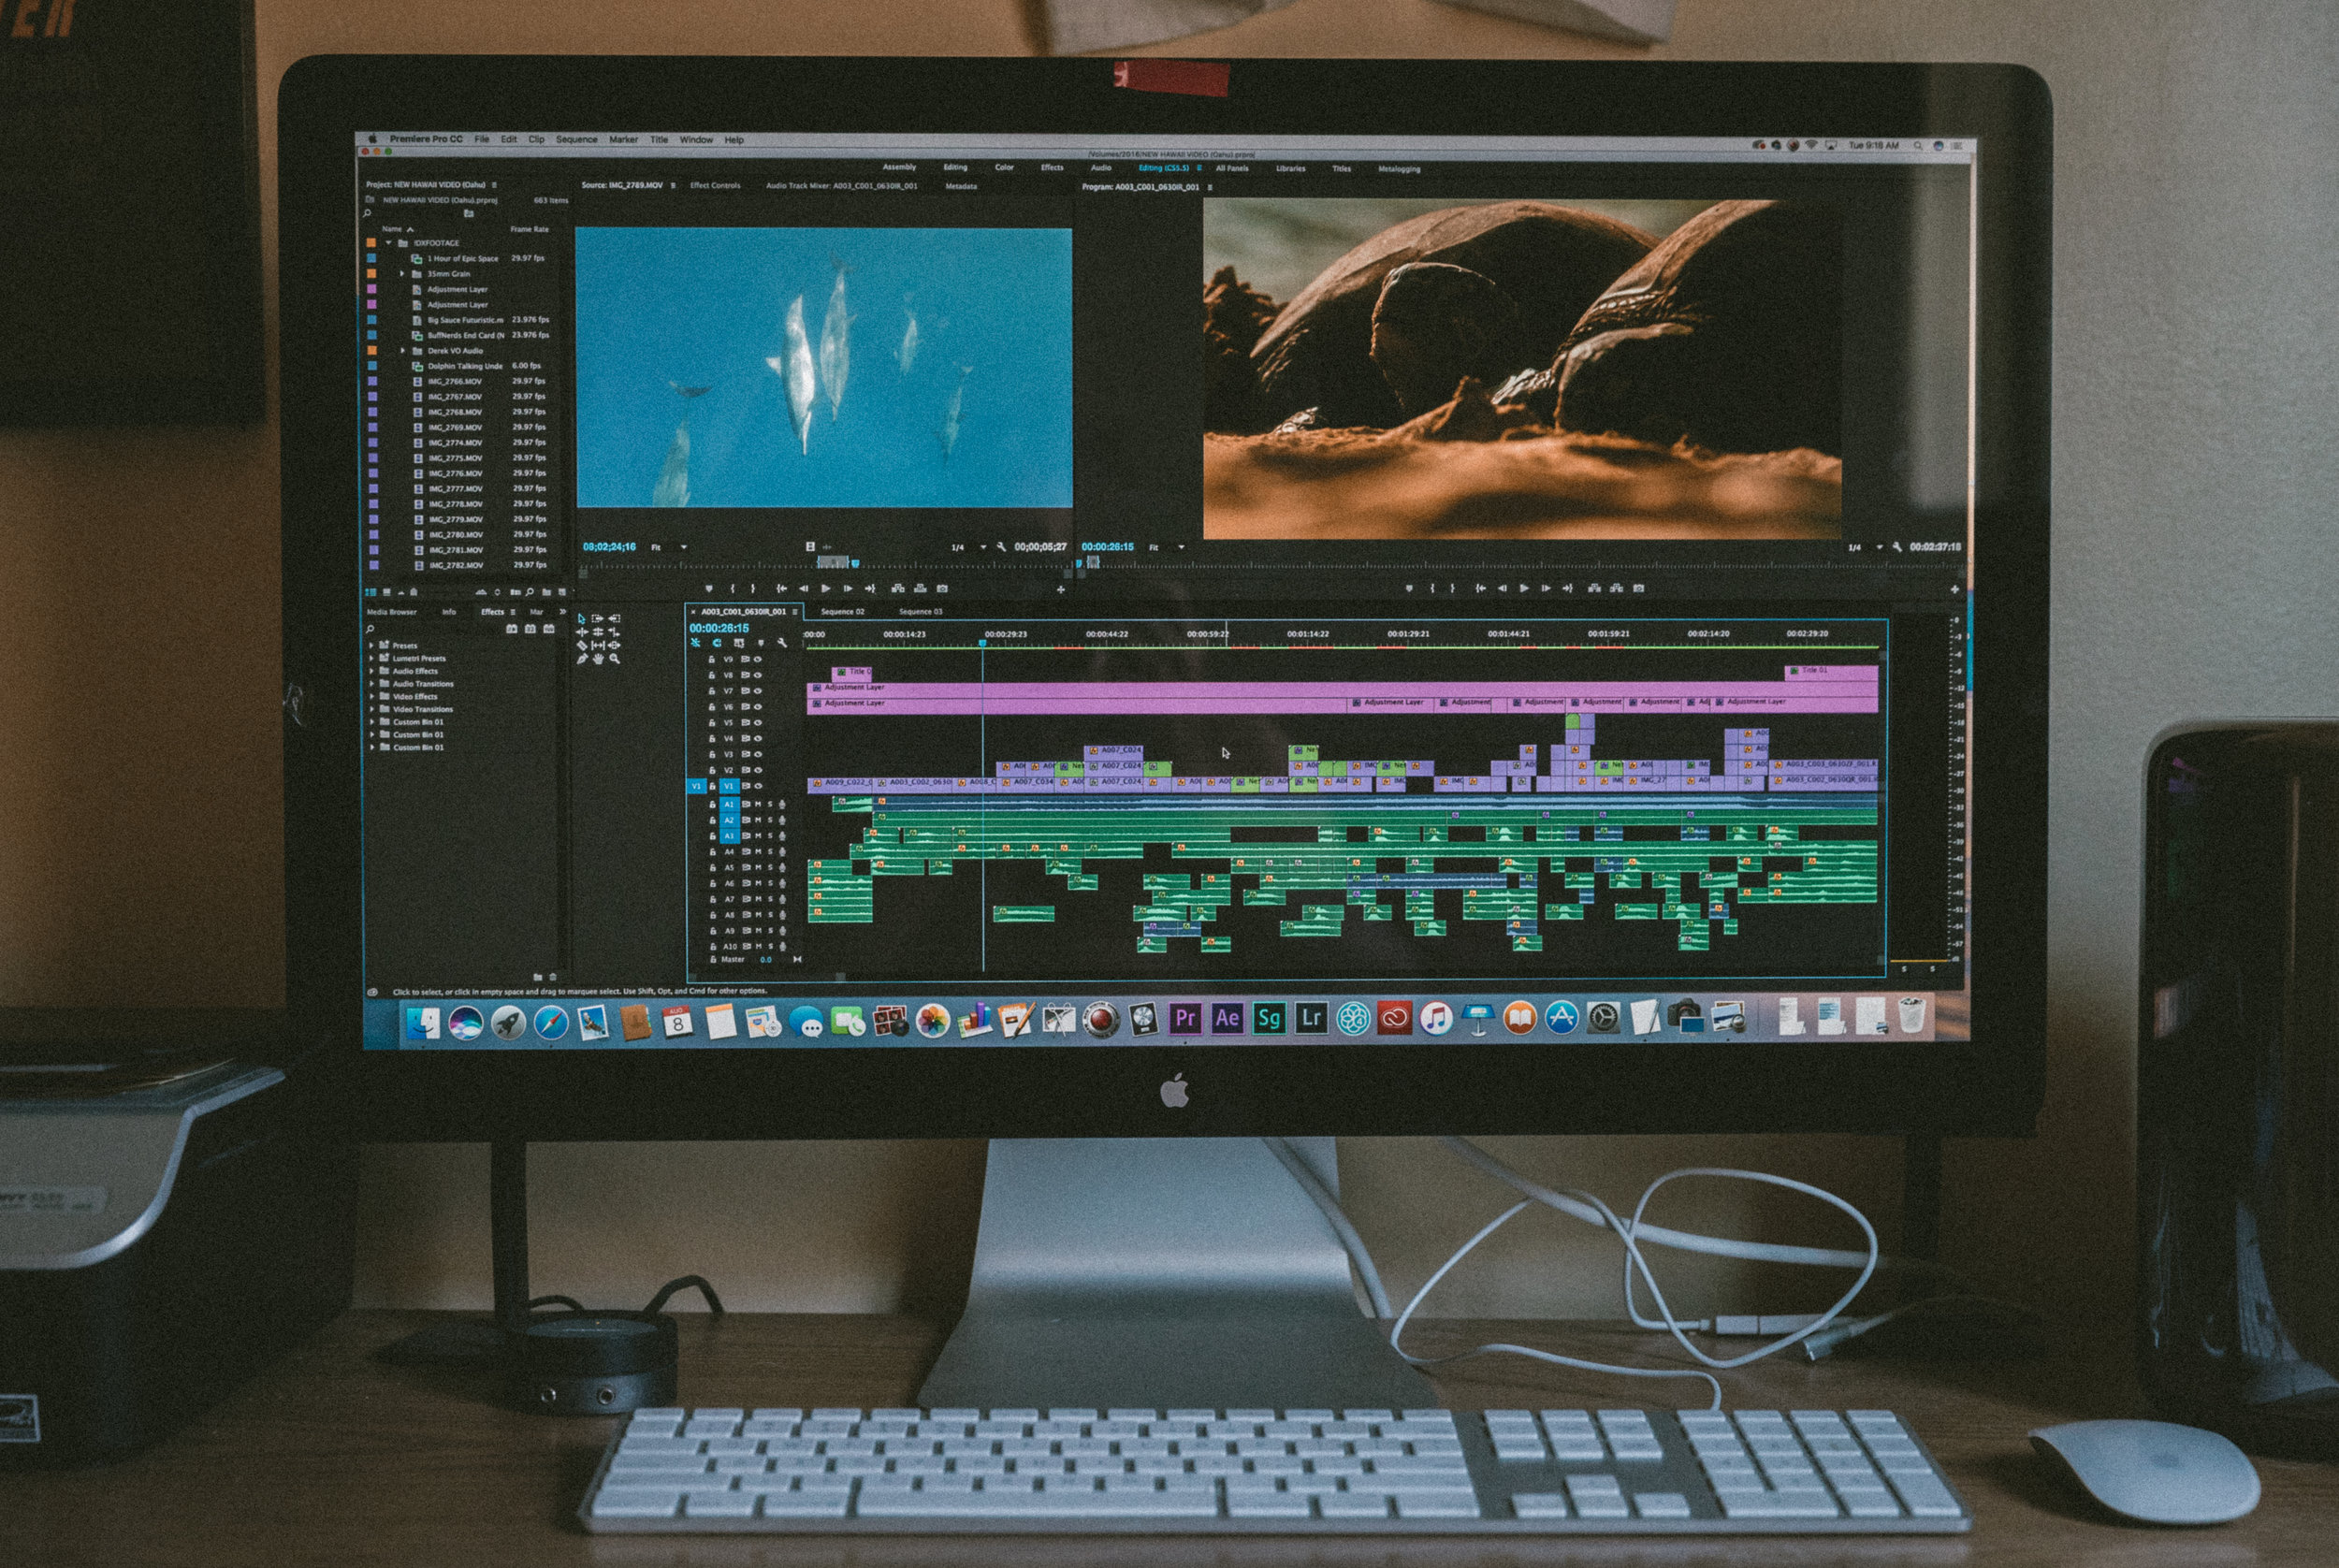 Phase 3: Video Post-Production